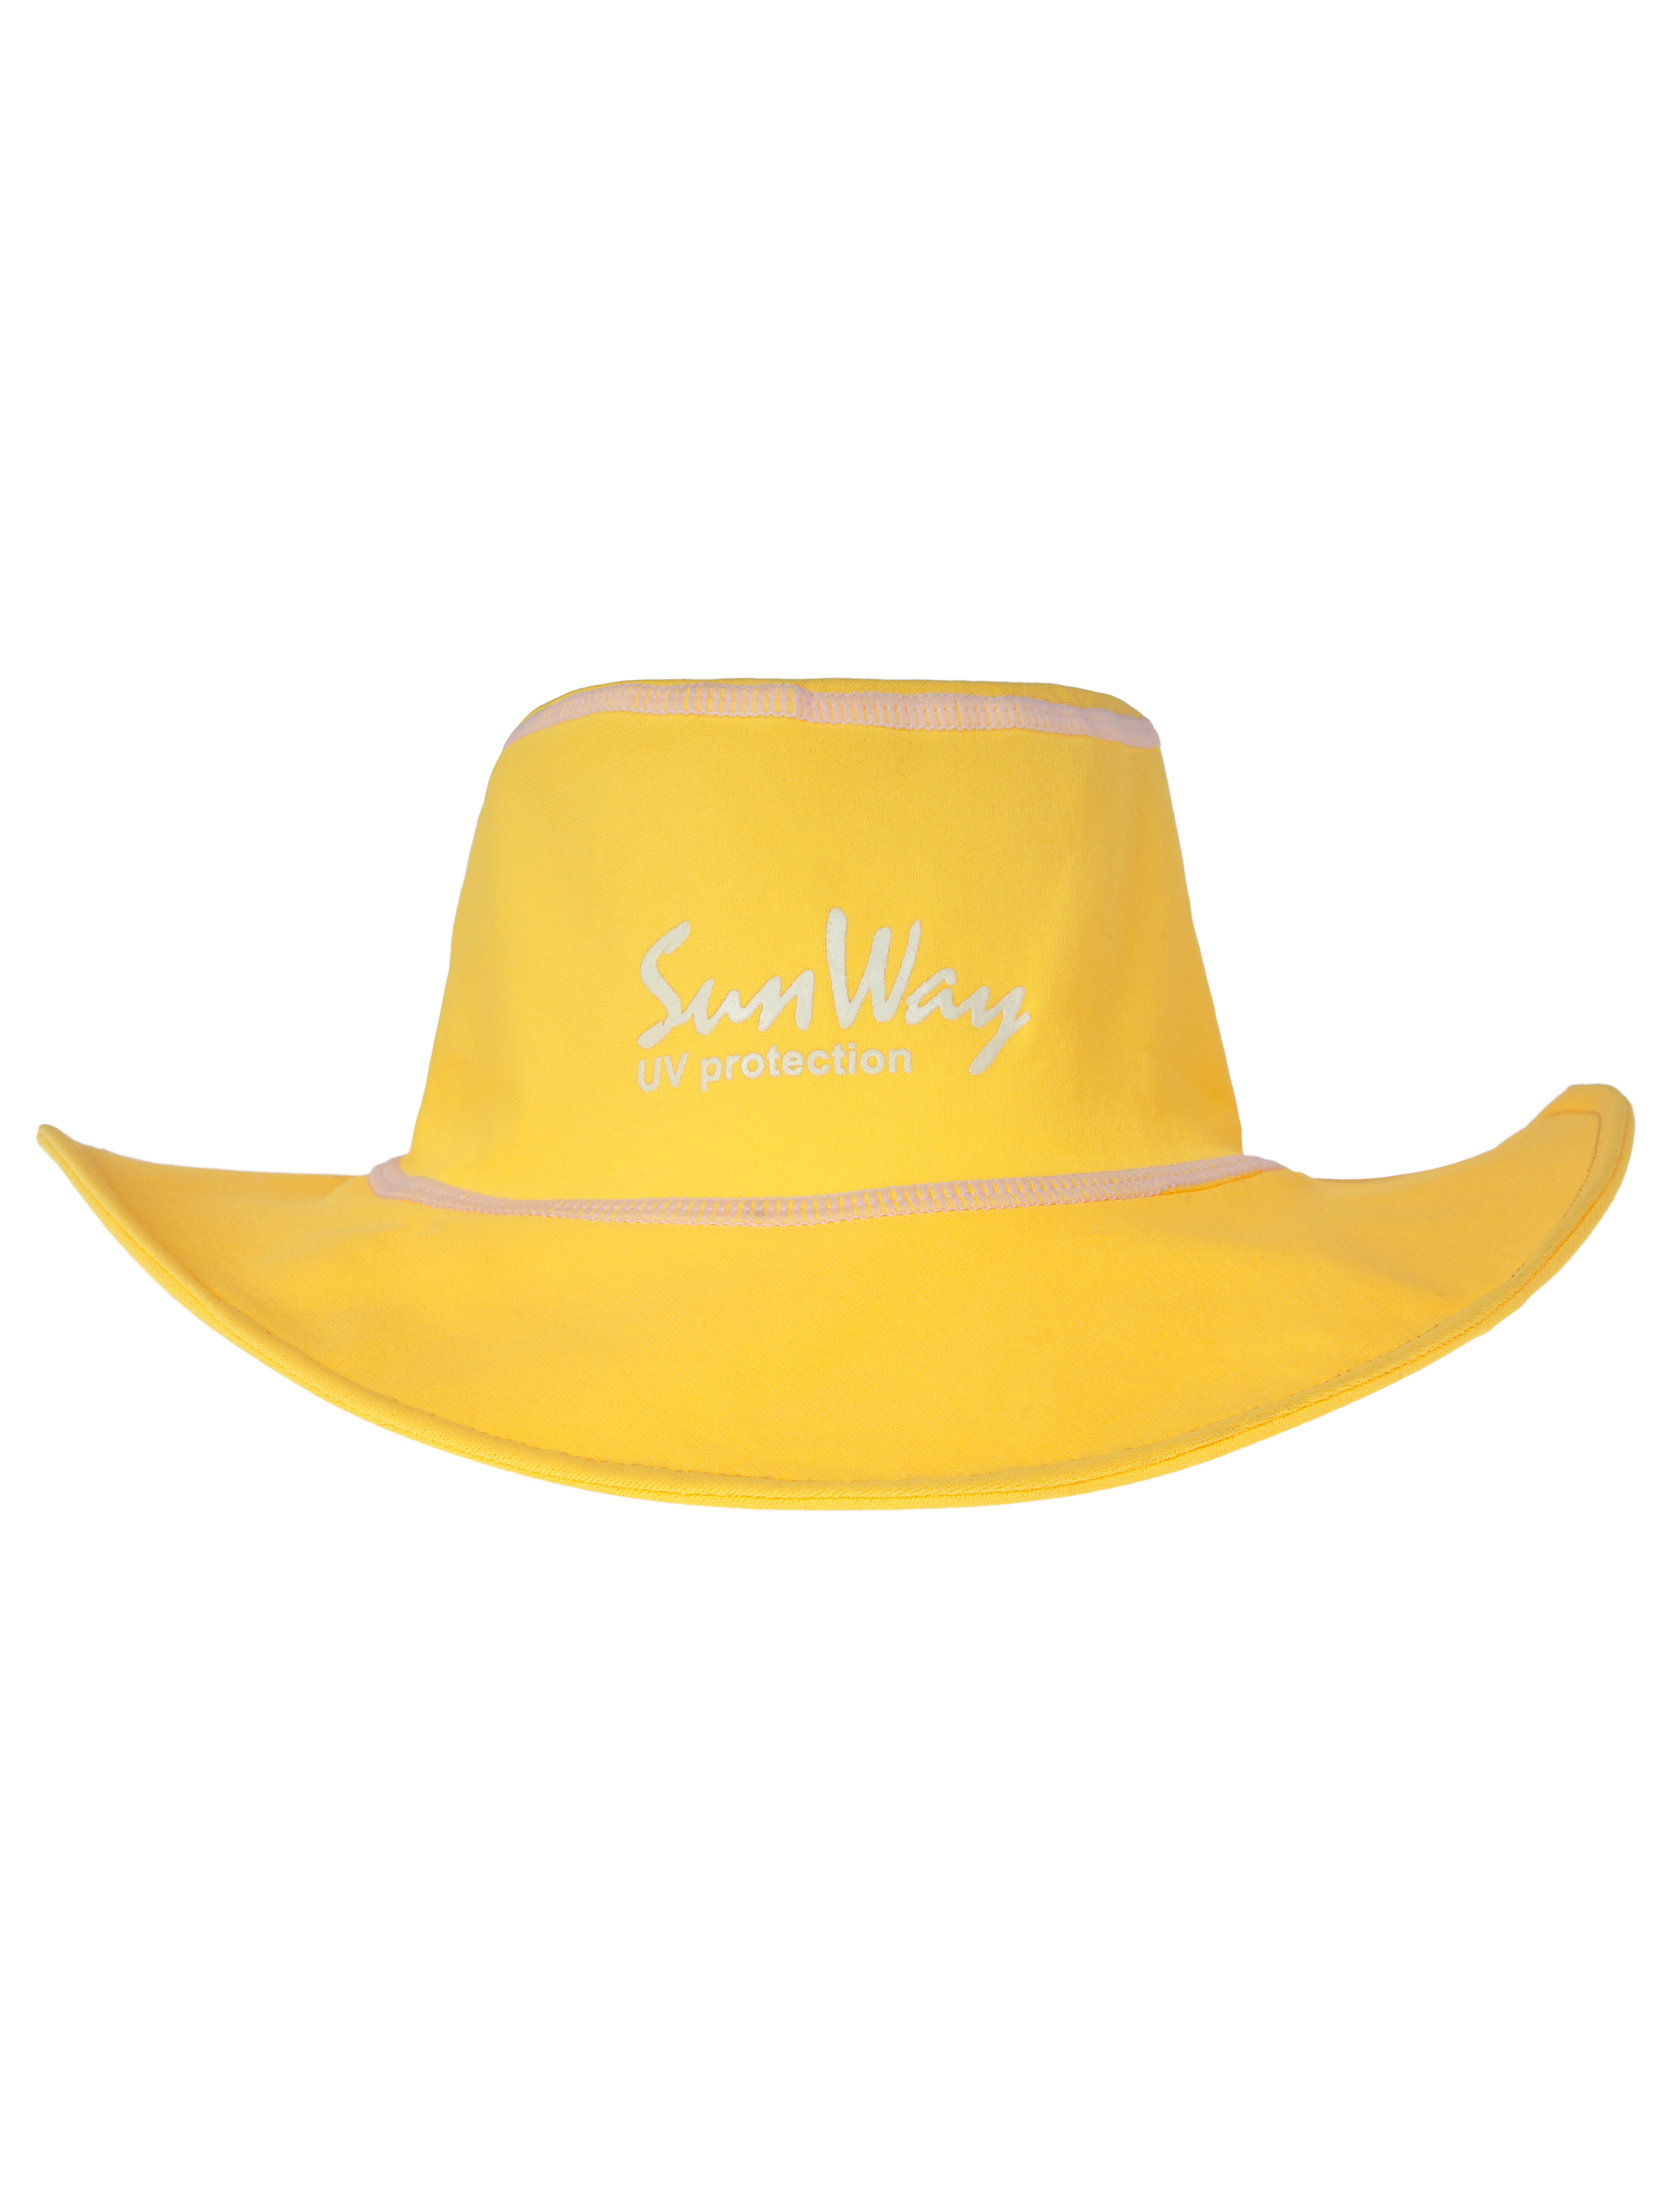 Babies and Toddlers Yellow Wide Brim Hat